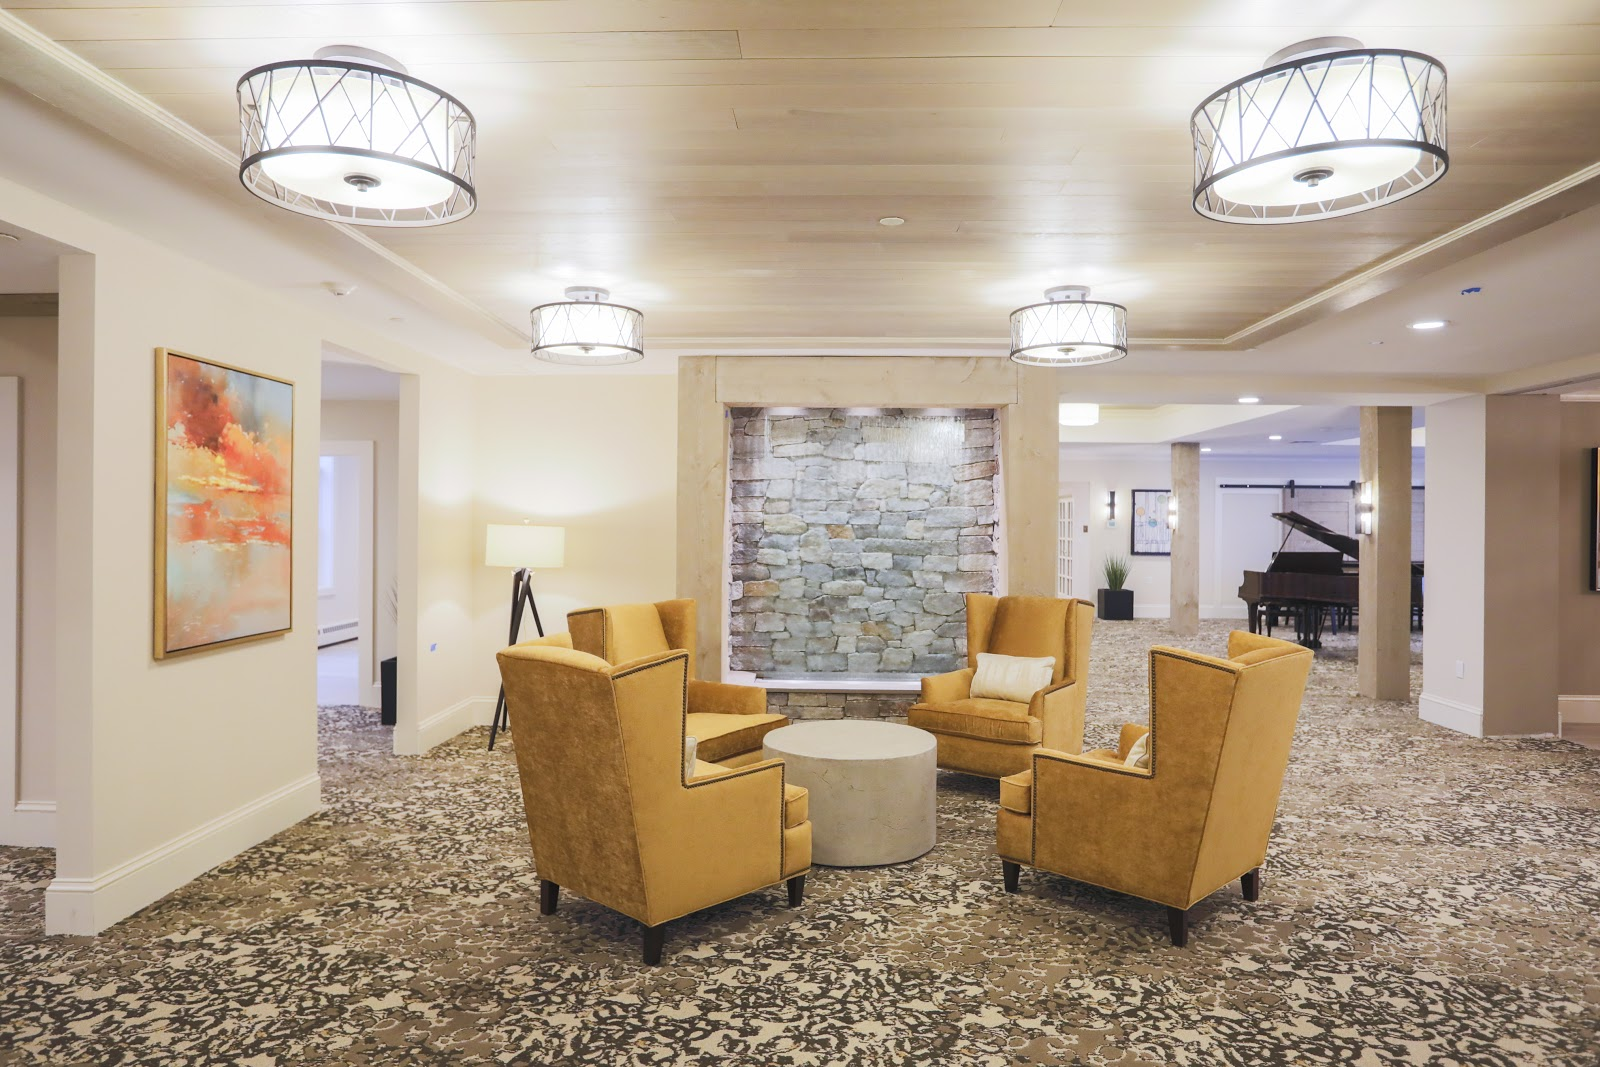 The art of the occupied renovation senior living south coast improvement company